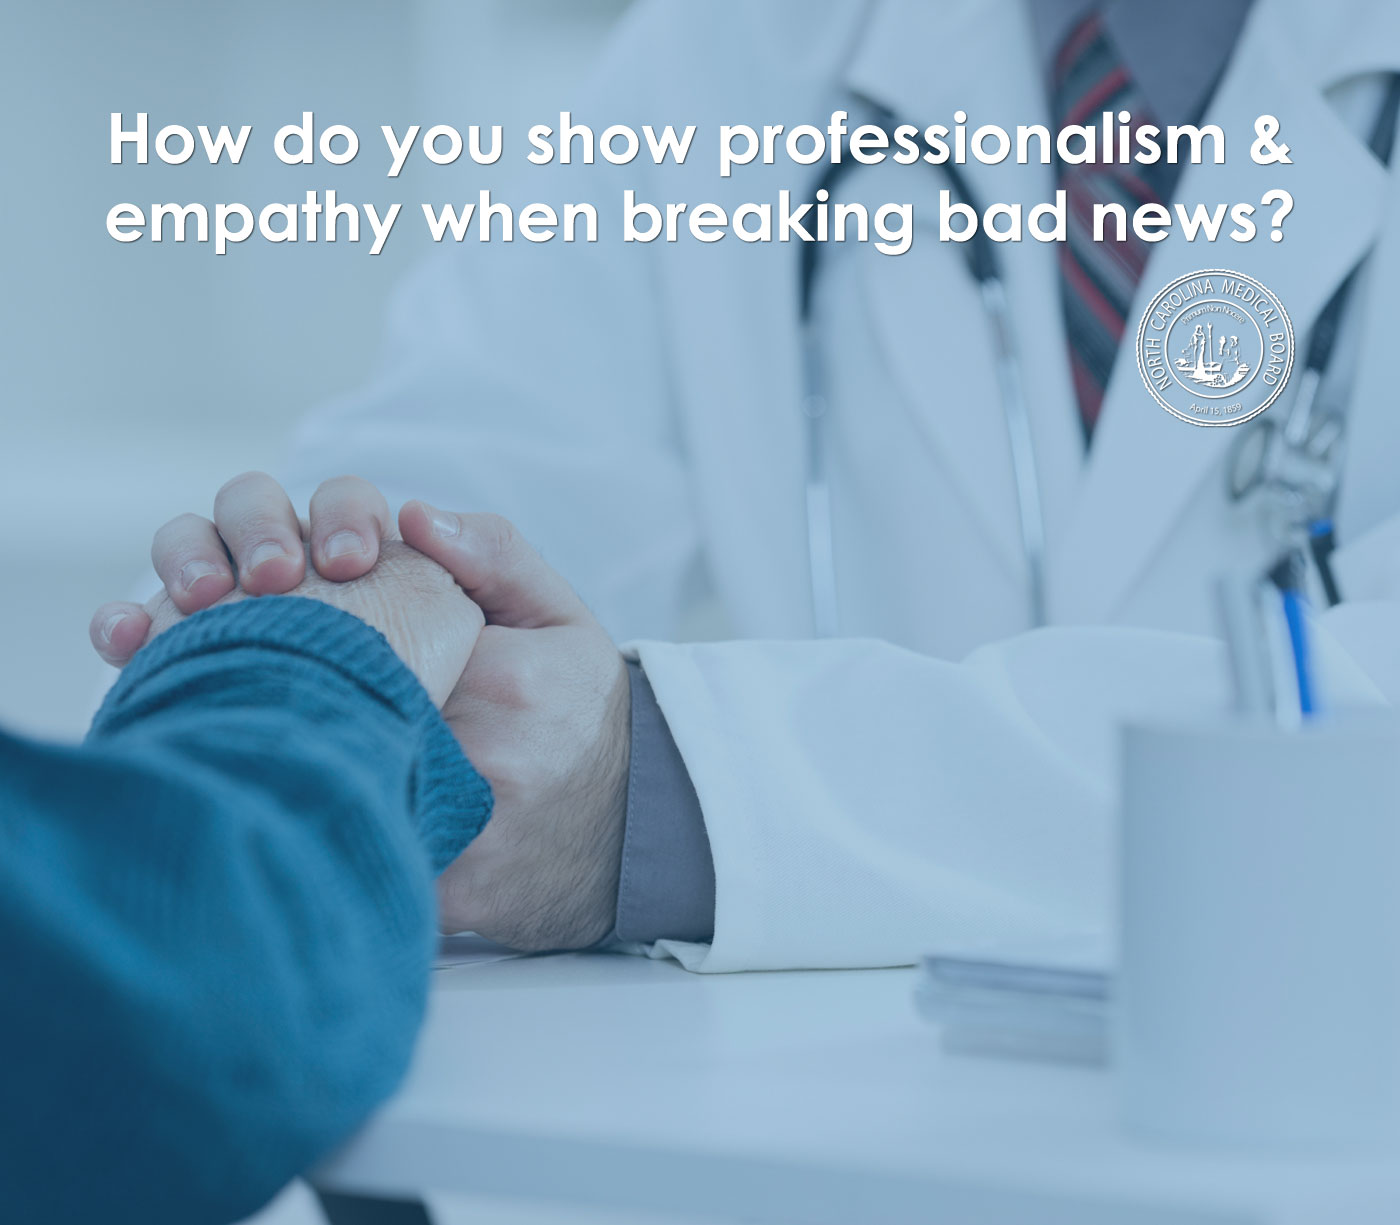 Professionalism and Appropriate Expression of Empathy When Breaking Bad News